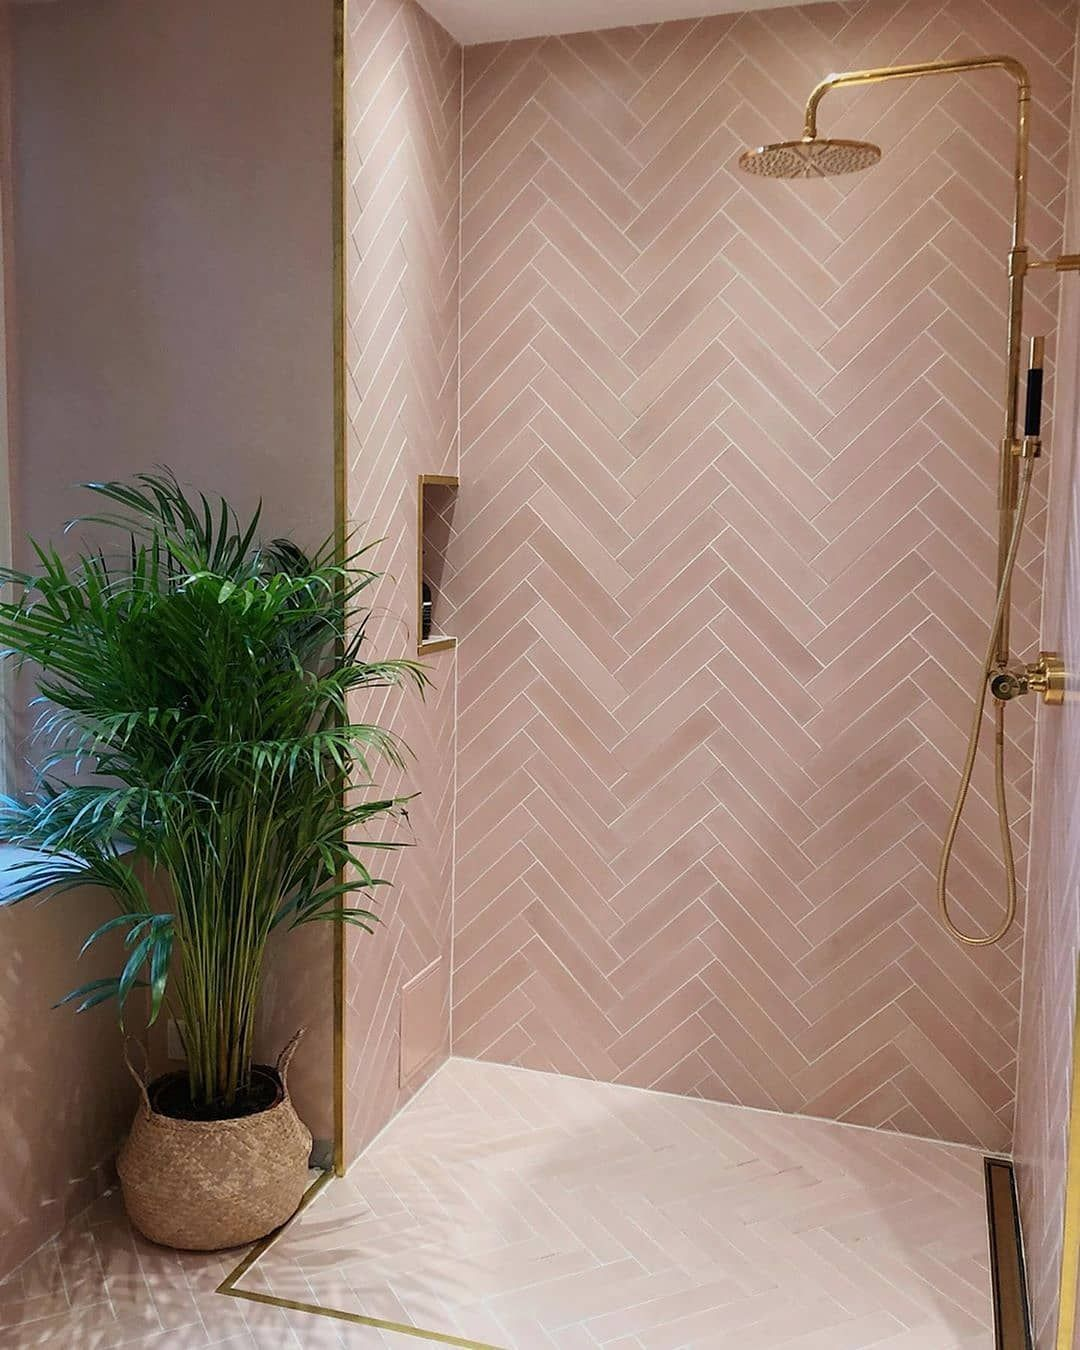 Marokk On Instagram Beautifule Pale Pink Bathroom By Idasogaard With Fine Details Herringbone Concrete Tiles In The In 2020 Bathroom Decor House Interior Interior